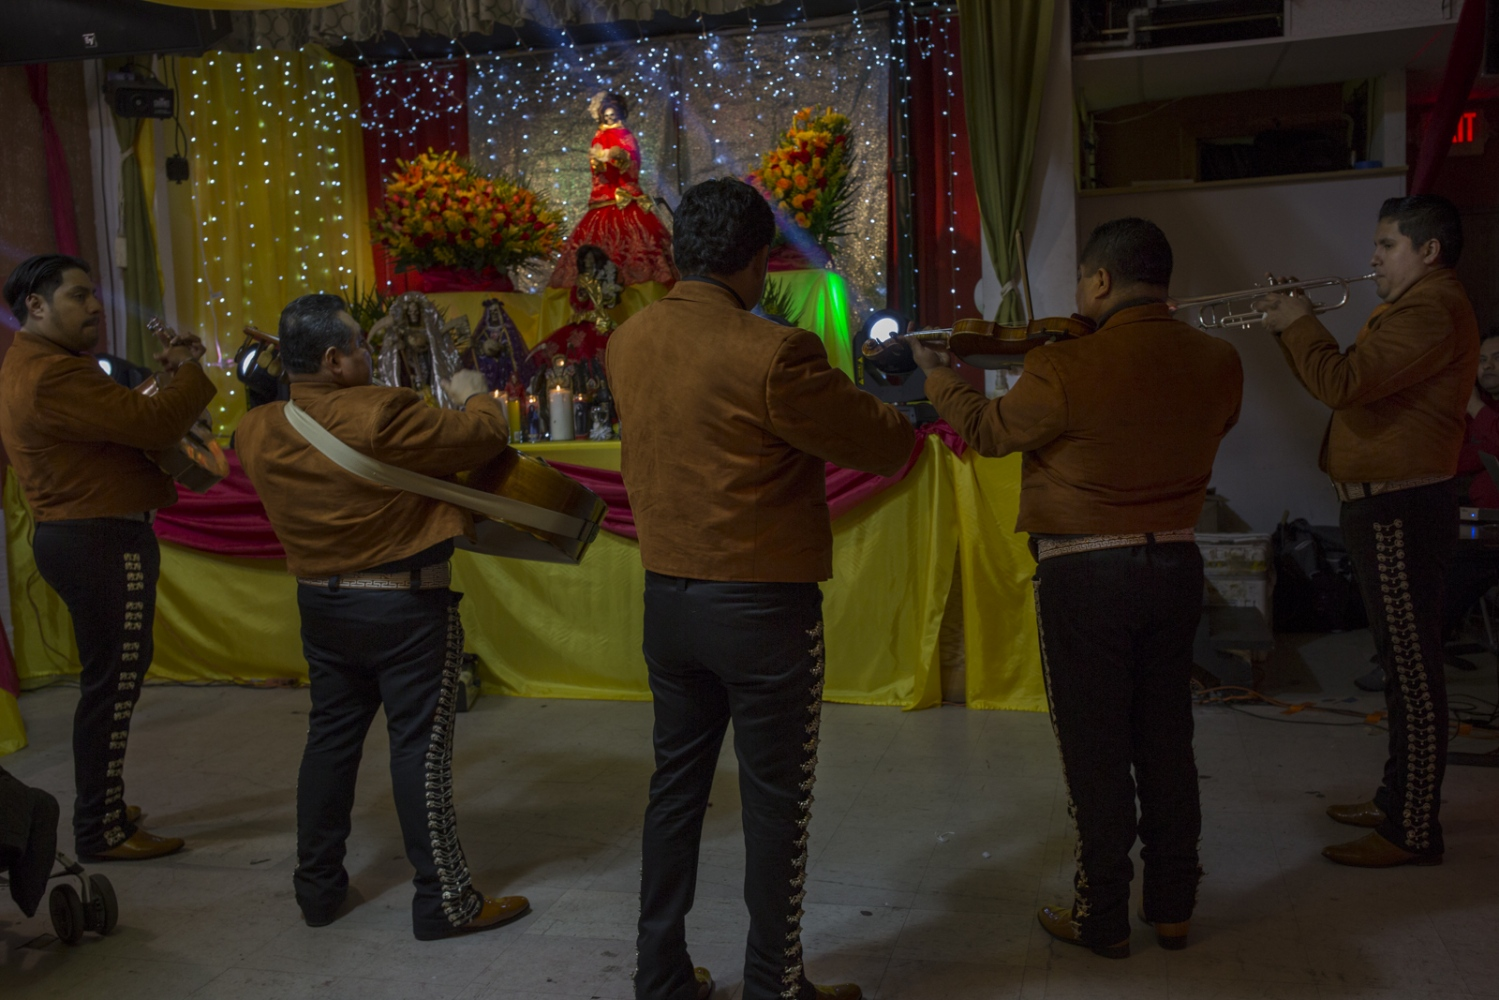 A Mariachi band plays at a party thrown by a Santa Muerte devotee in Queens, New York.